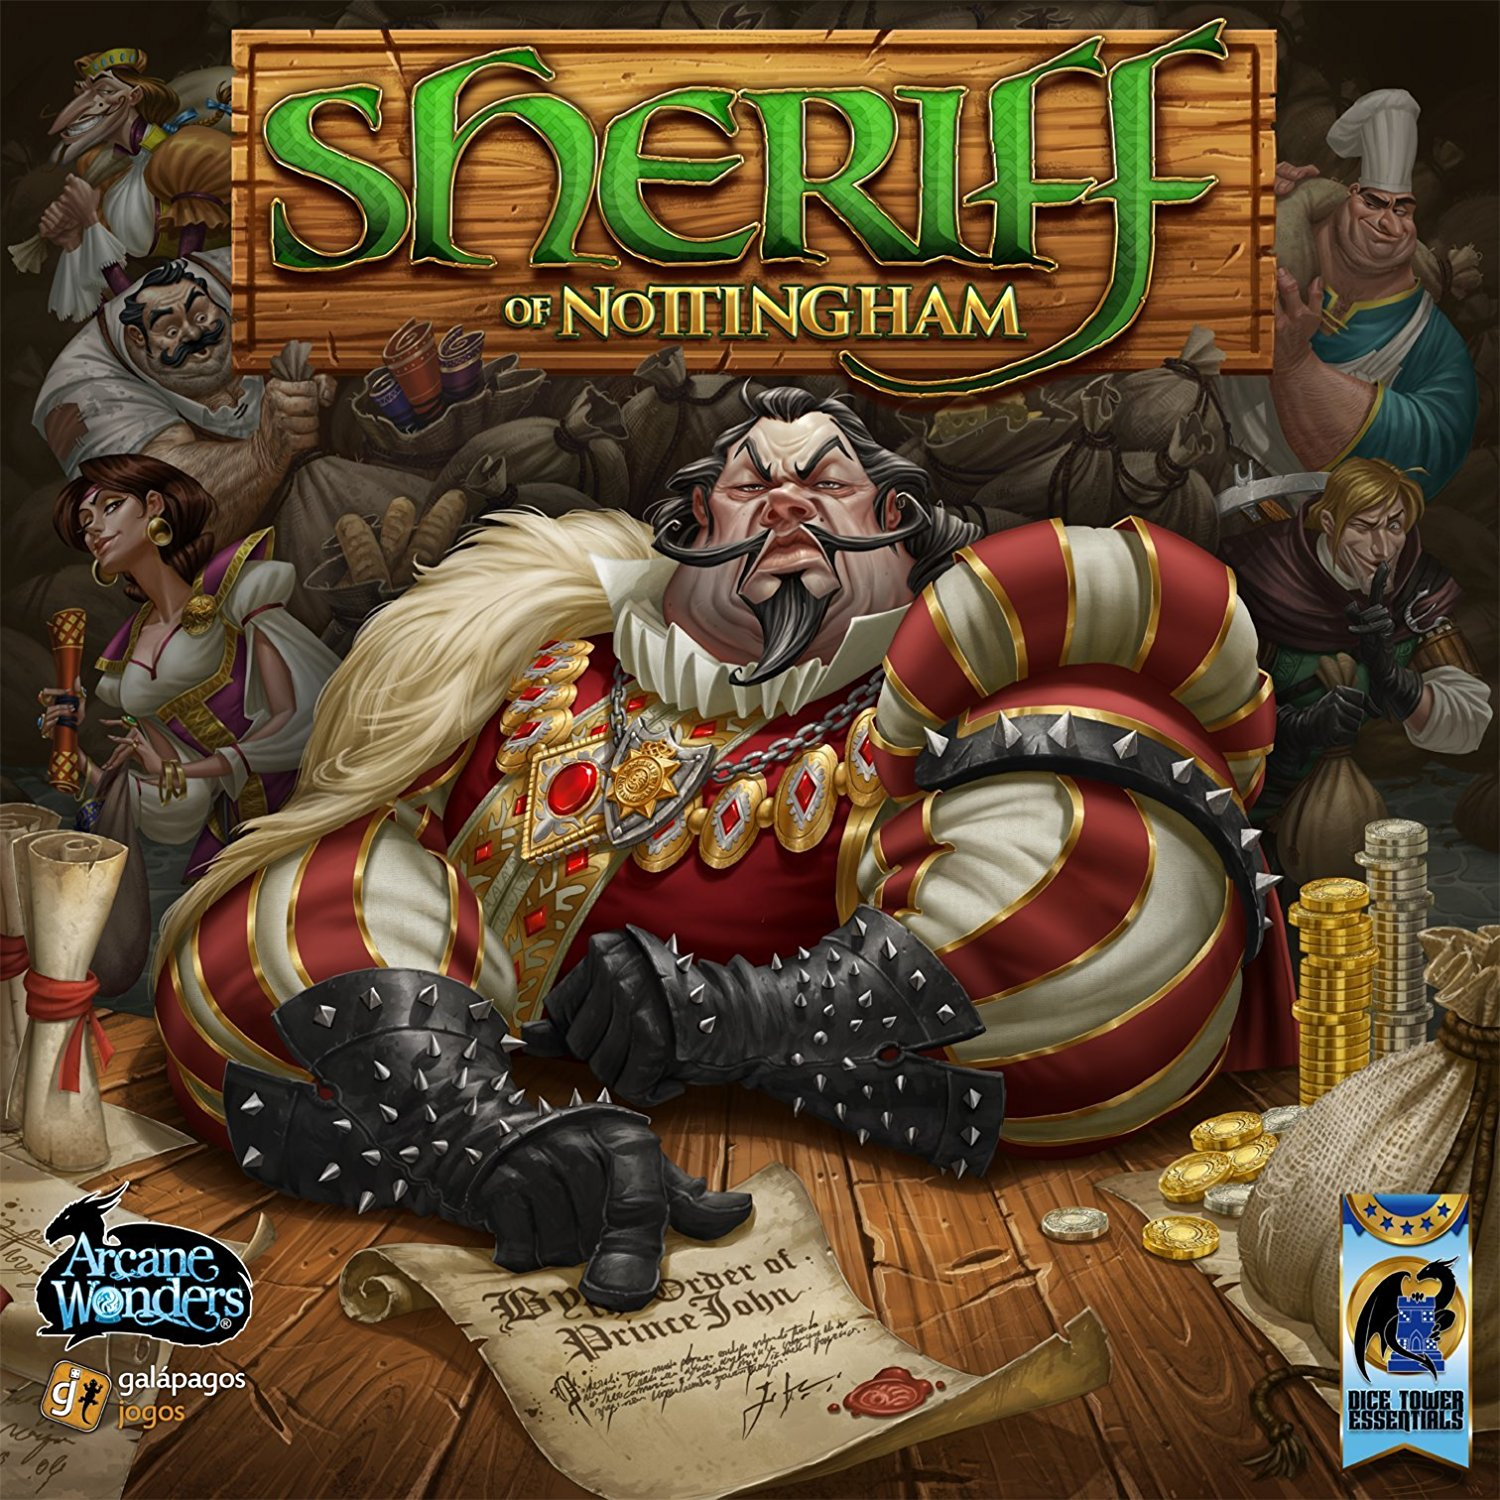 Sheriff of Nottingham - INTRODUCES: BluffingSheriff of Nottingham is a smuggling game where each player is attempting to smuggle valuable contraband past the Sheriff. Each player will verbally provide the sheriff with the inventory of goods they are trying to deliver and the sheriff will decide whether or not he/she wants to waste time inspecting the goods. The players can choose to bribe the sheriff with a little money in order to